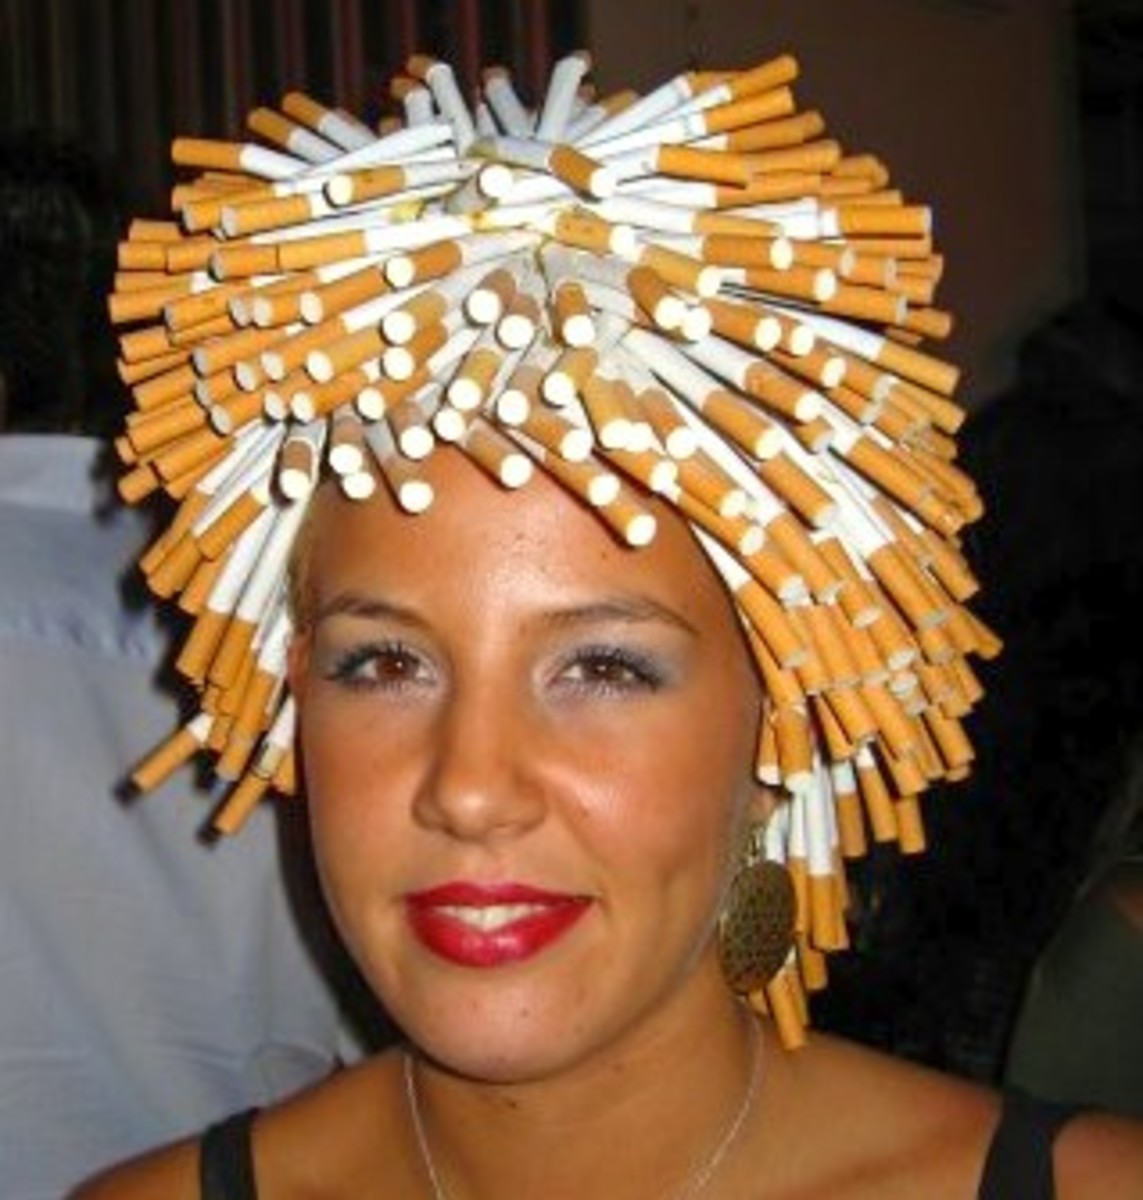 Title: Cigarette Head  Attribution License: http://creativecommons.org/licenses/by/2.5 Photographer: tylerdurden1: everystockphoto.com